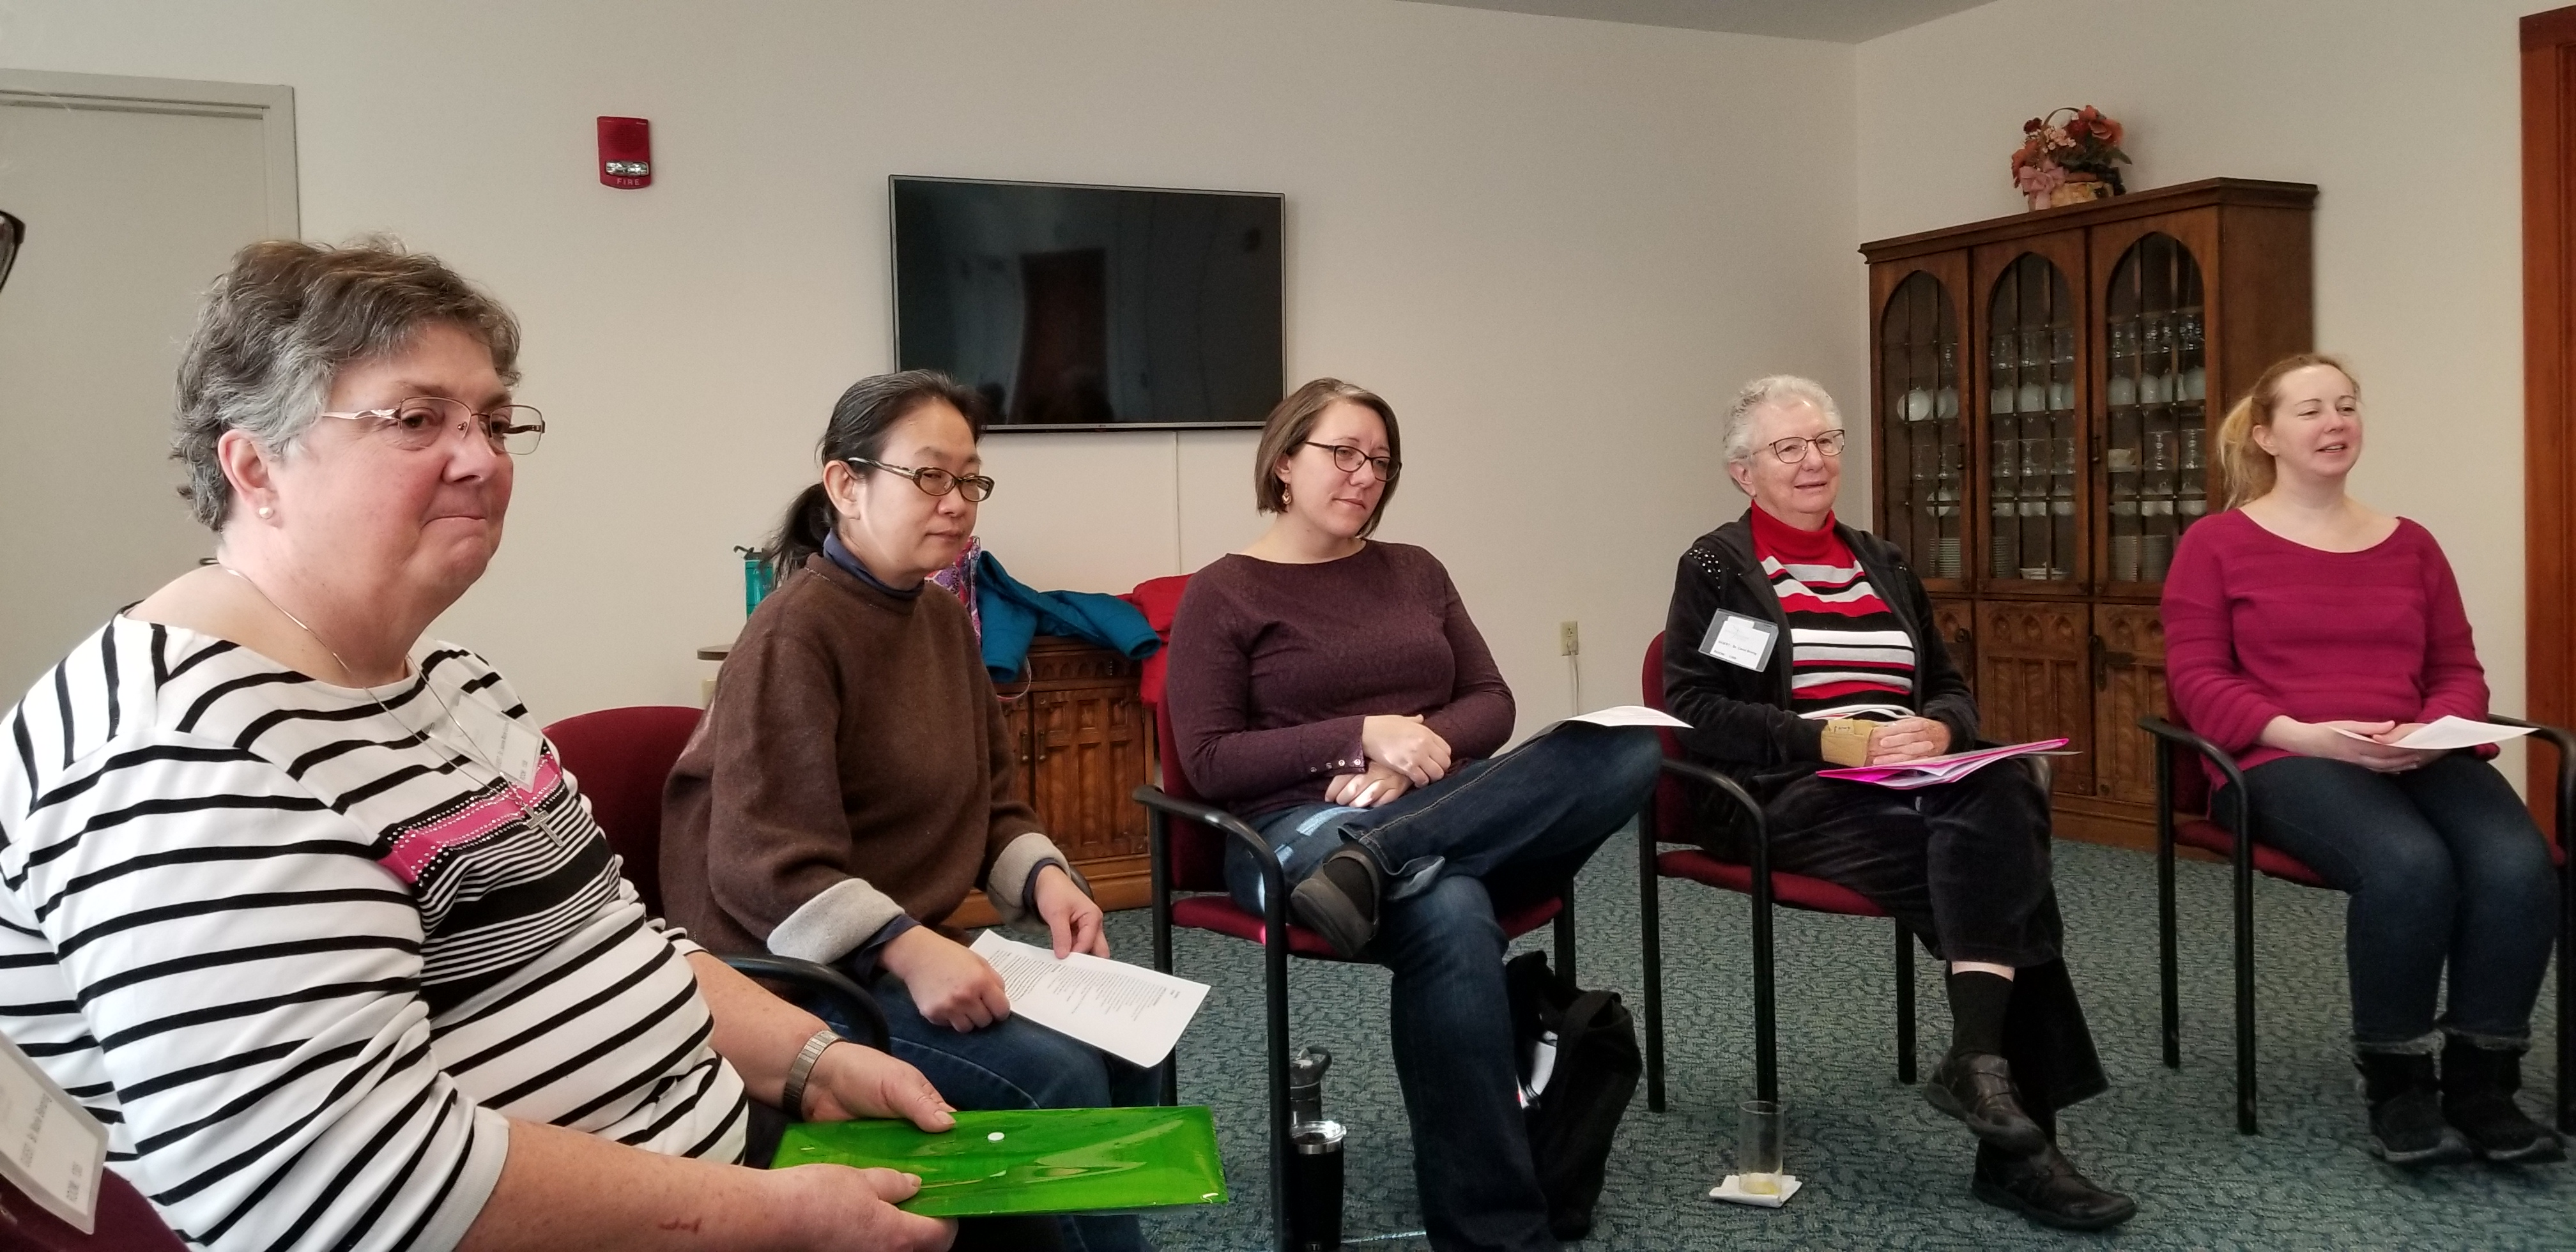 Discussing the first semester of the 2018-2019 US Federation novitiate.